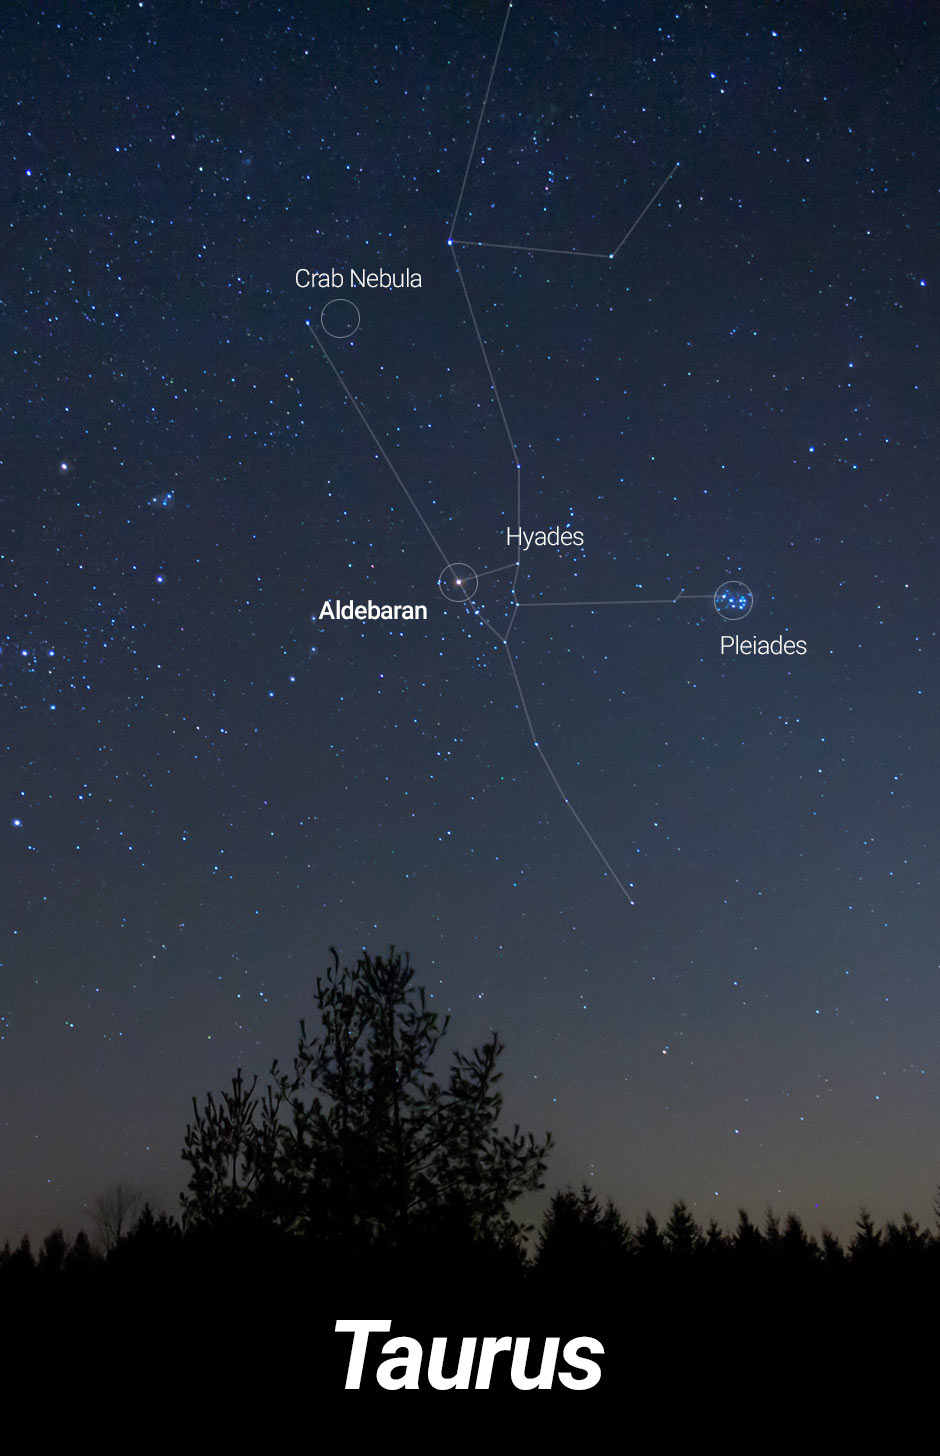 Starwatch: prepare to track down a young crescent moon